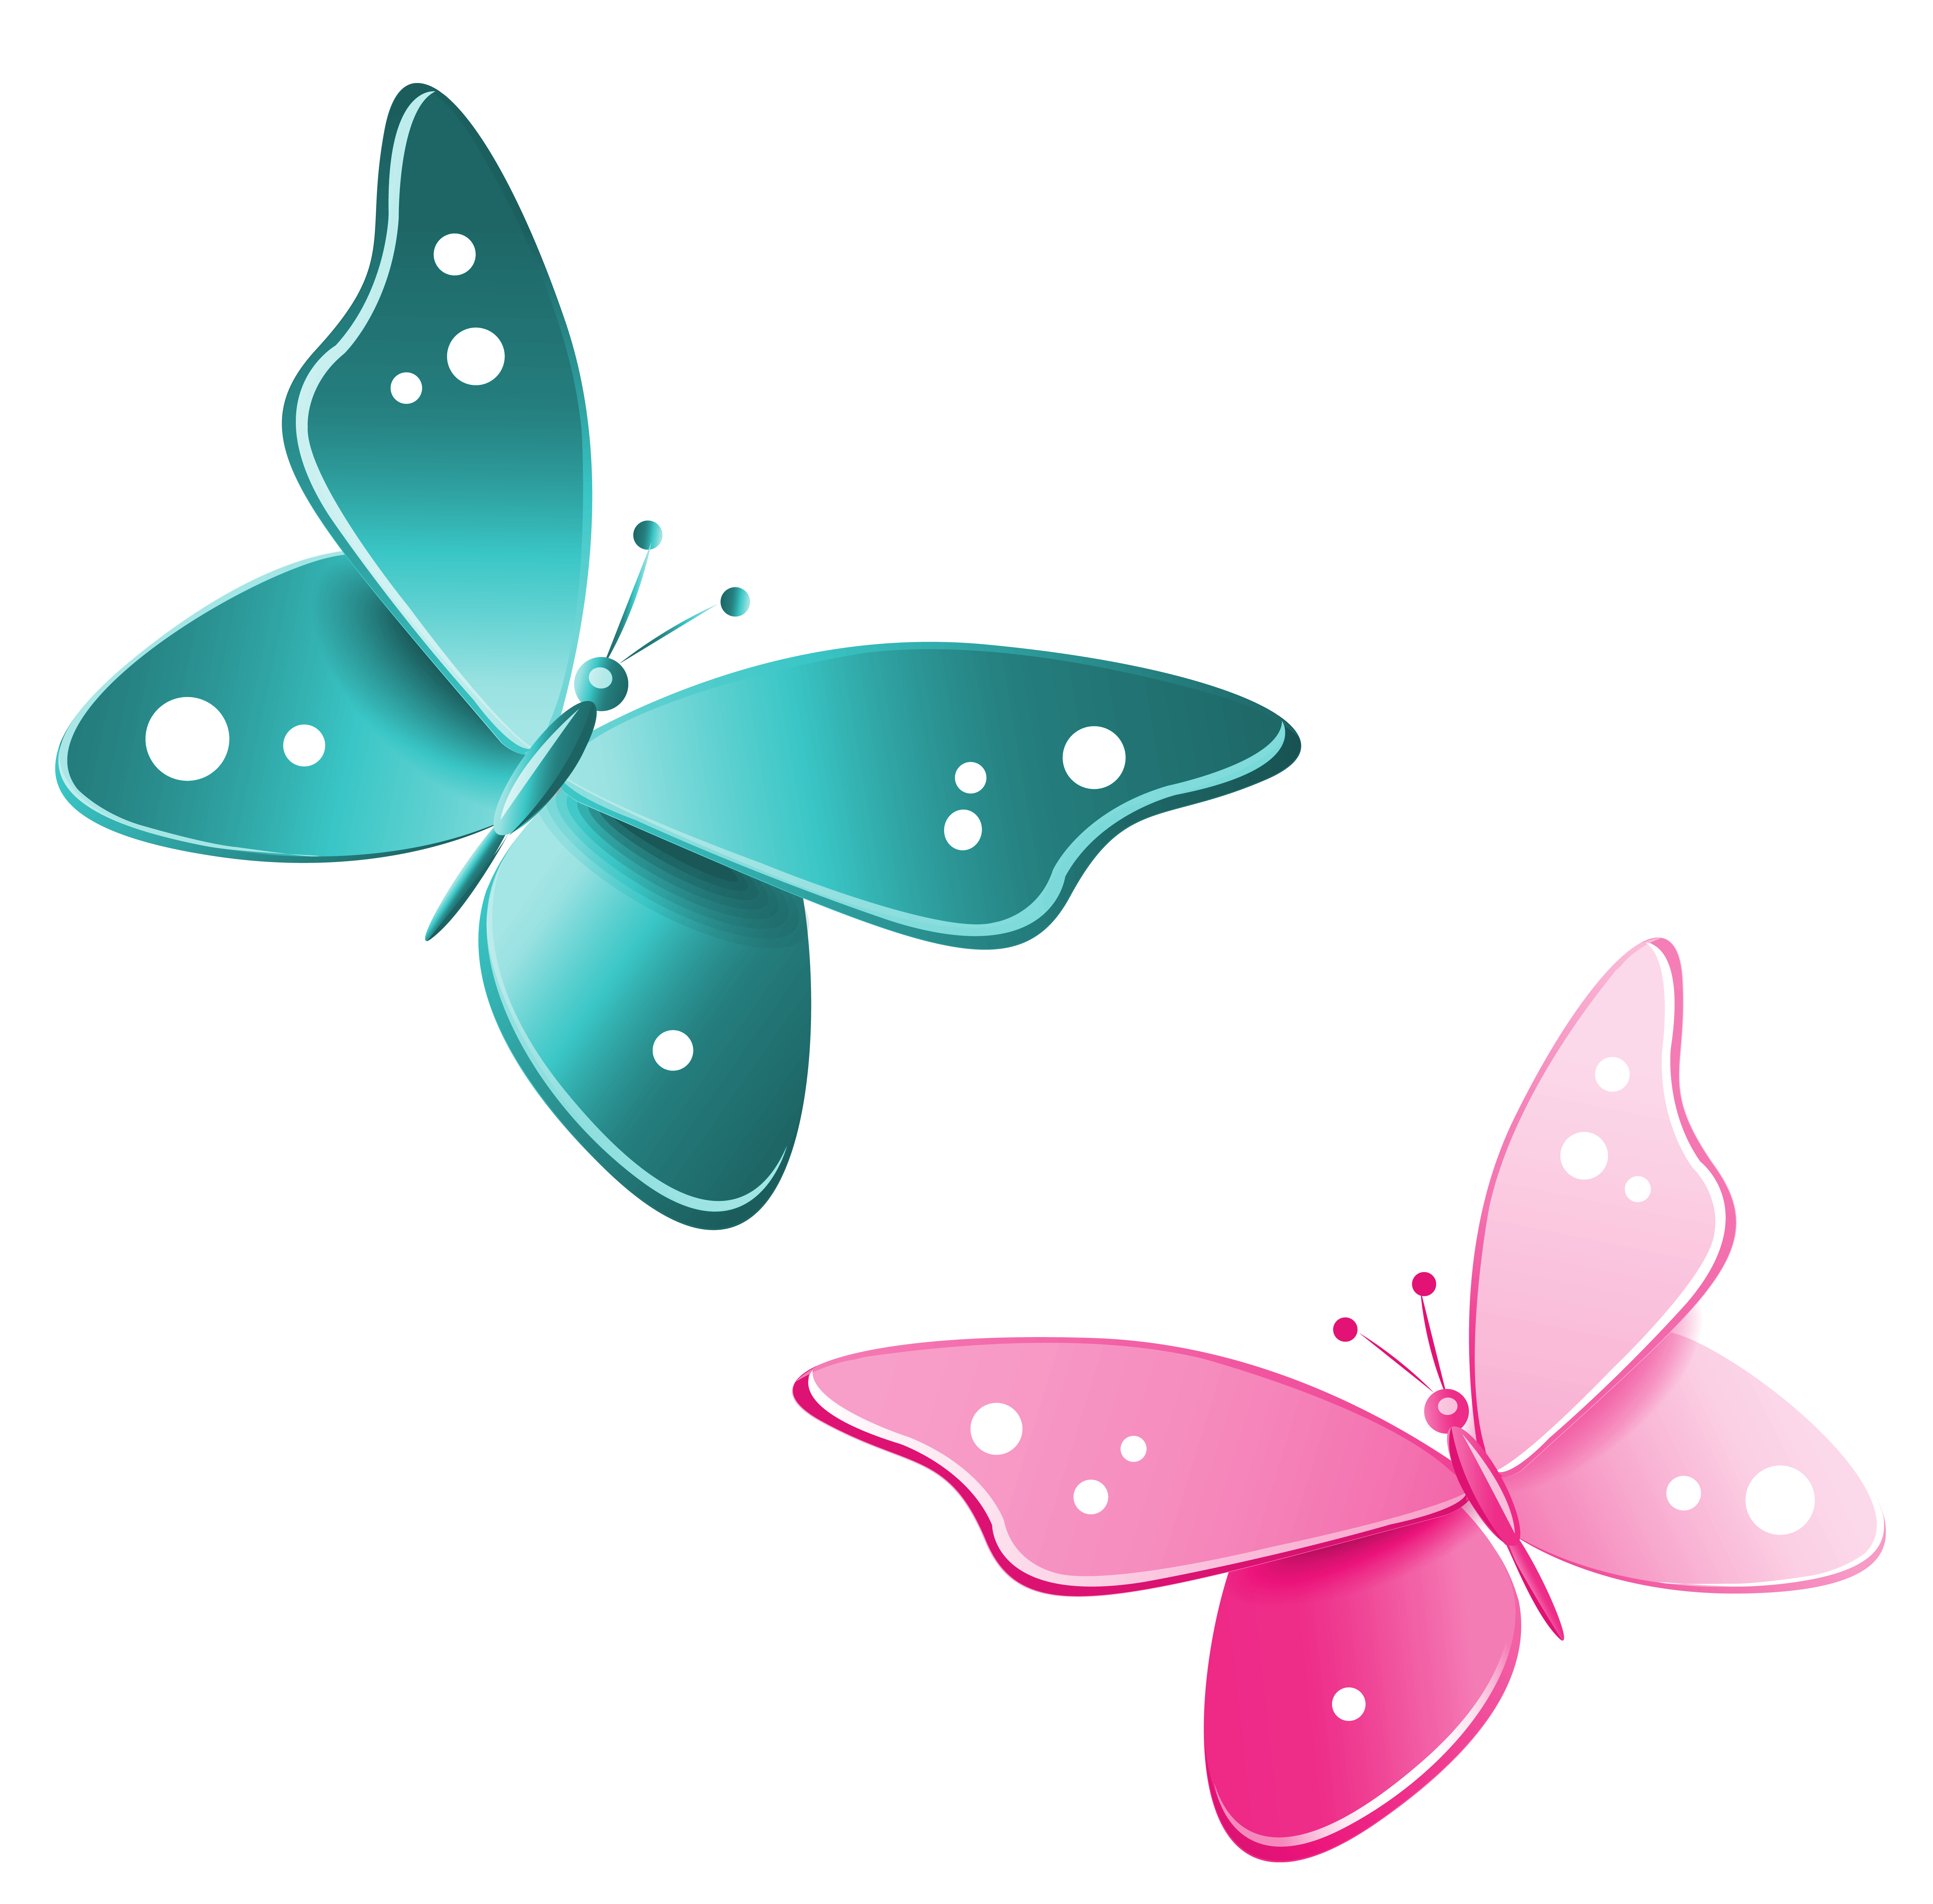 Butterflies clipart png. Blue and pink image